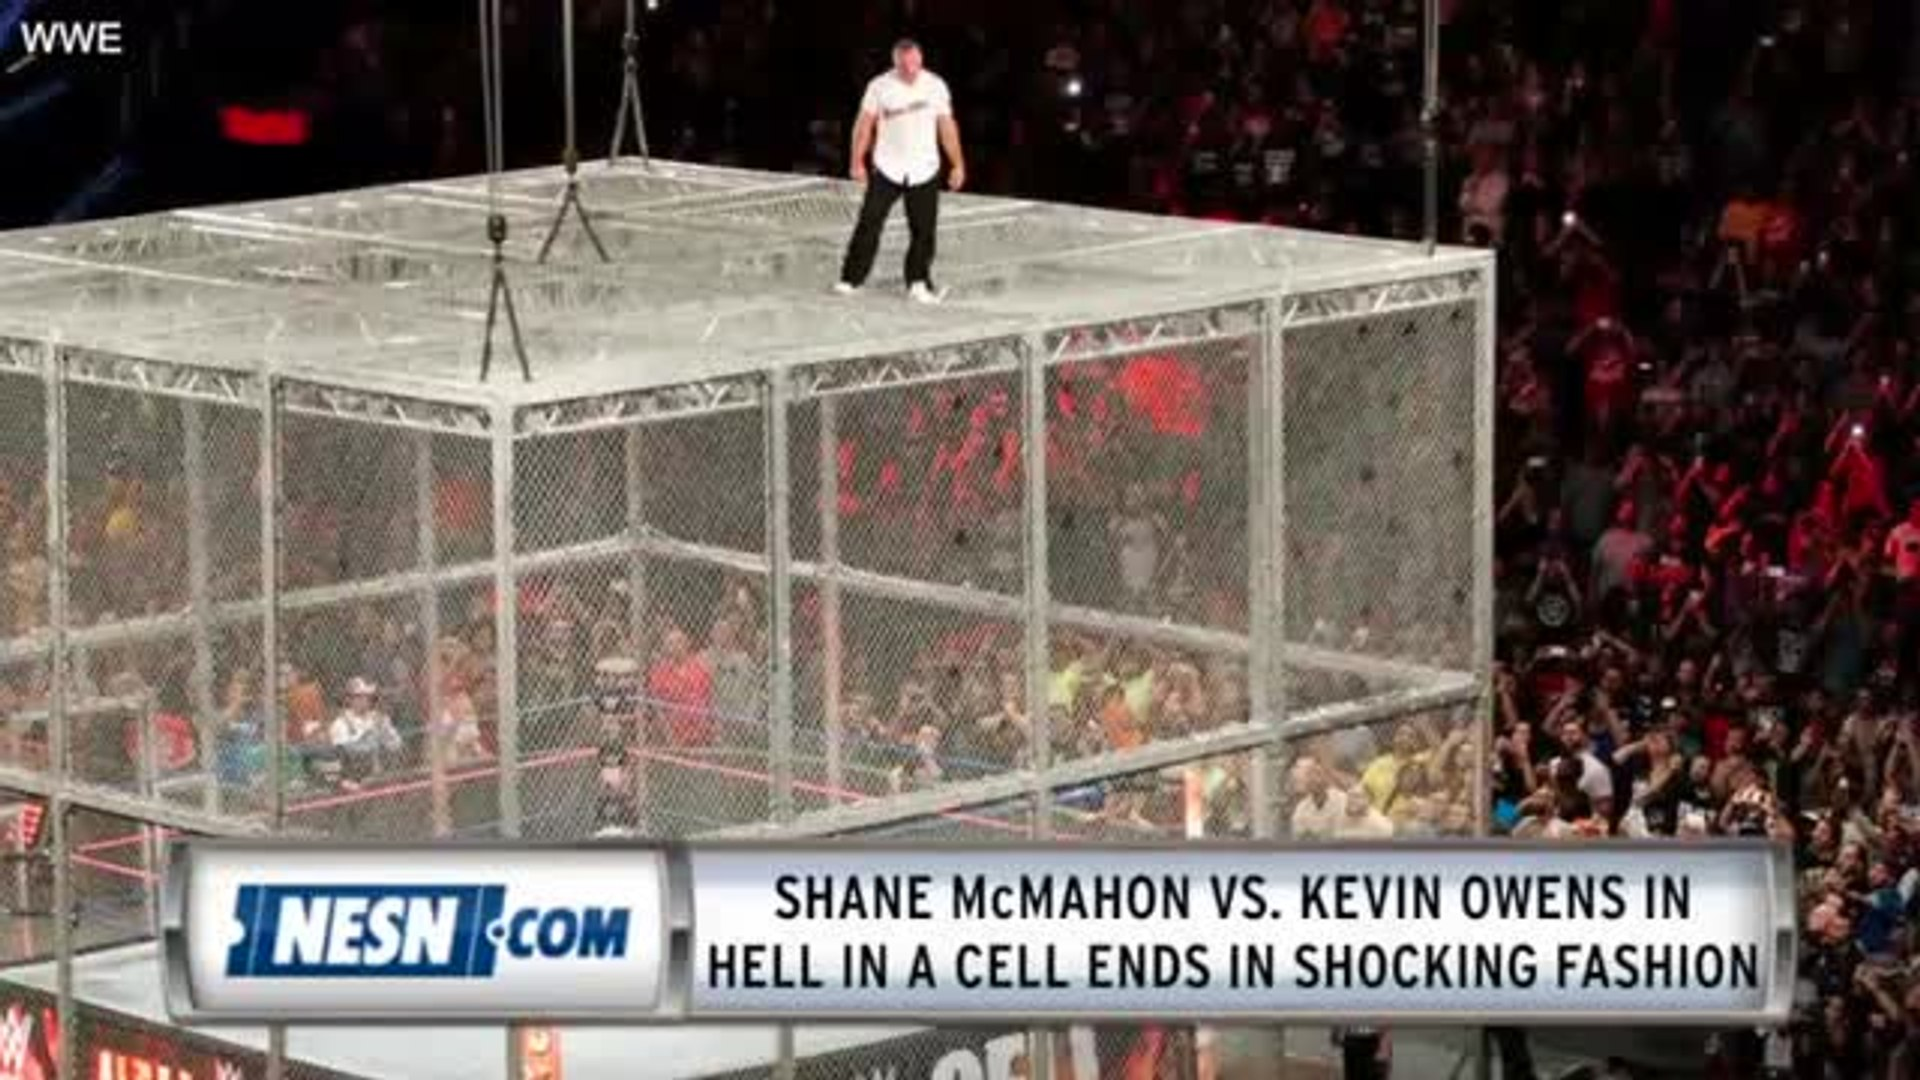 Shane McMahon Falls 20-Feet In Hell In A Cell Vs. Kevin Owens